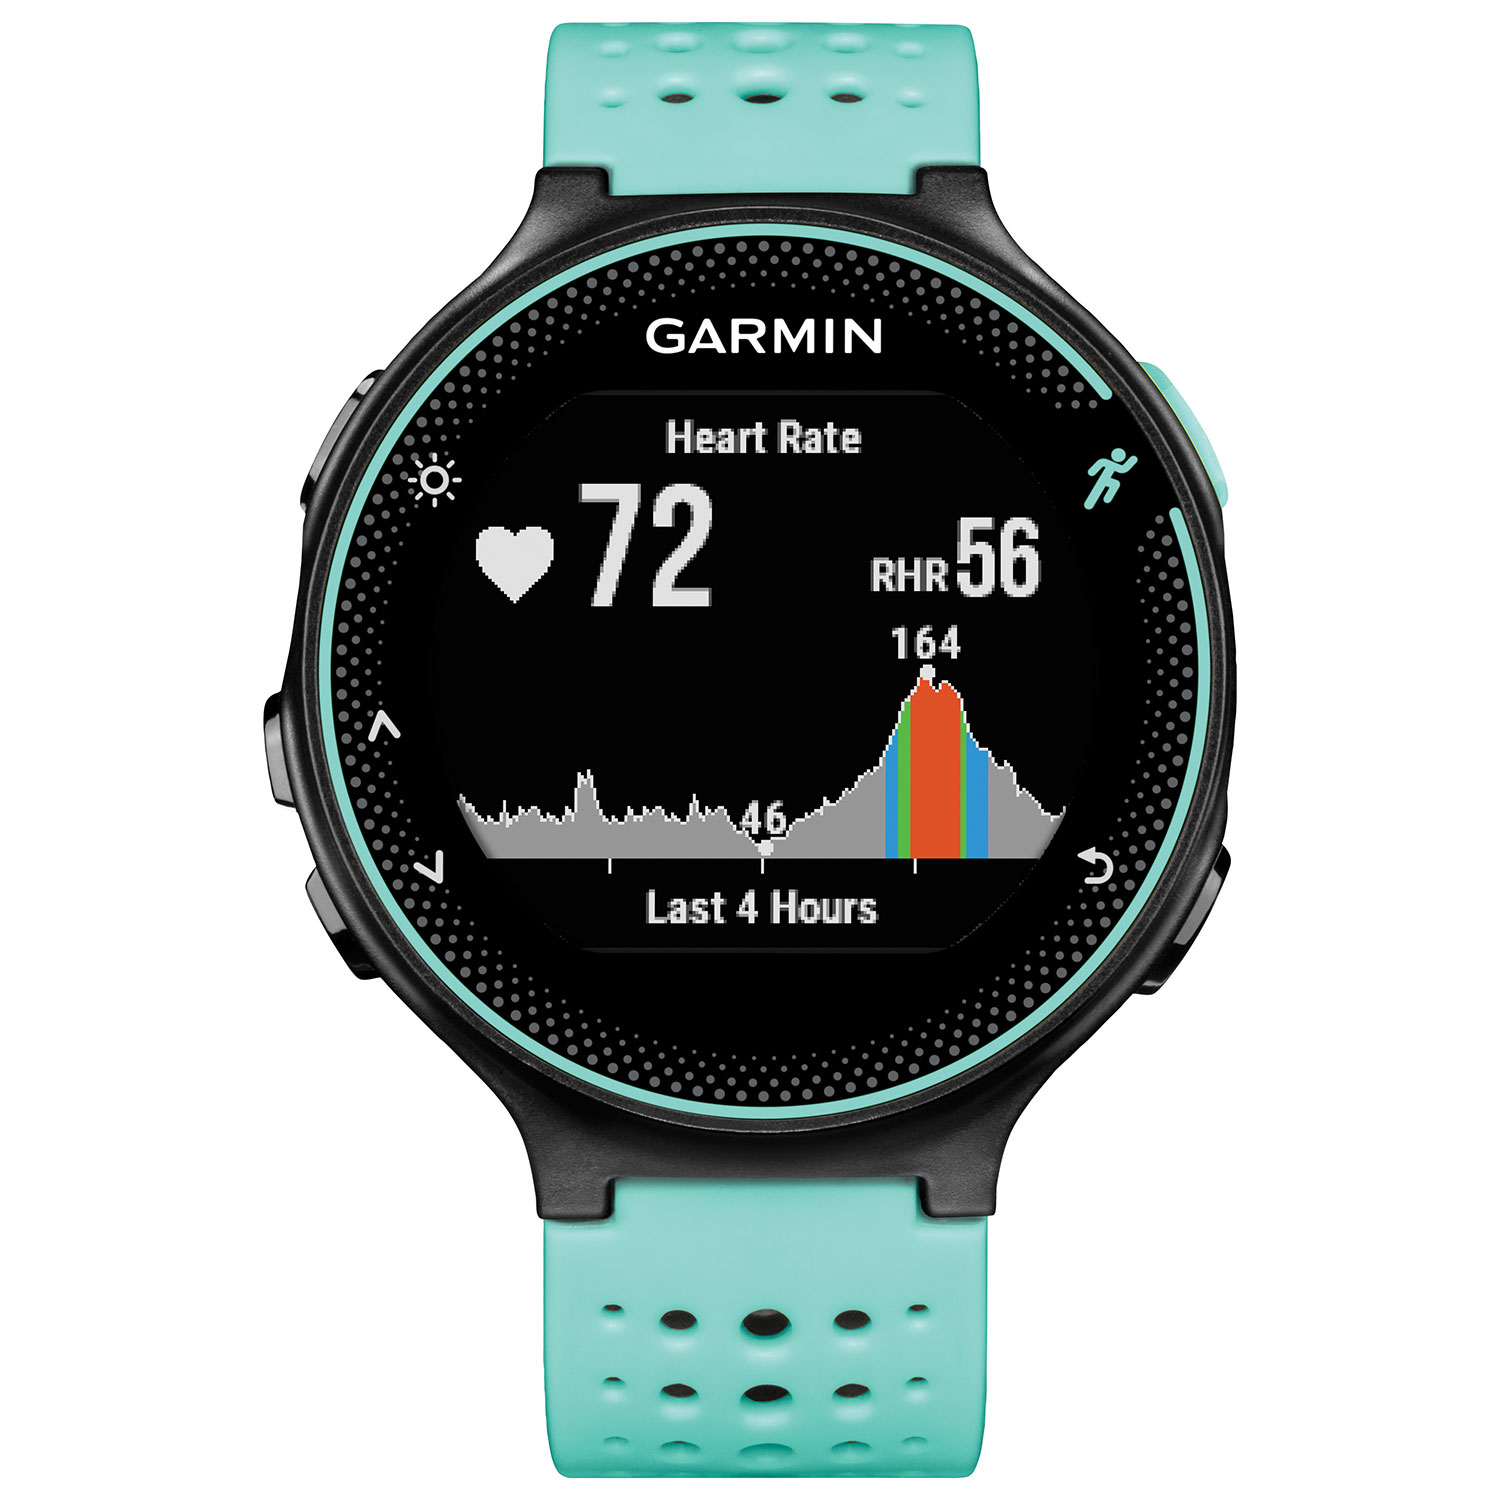 why heart rate matters - garmin forerunner